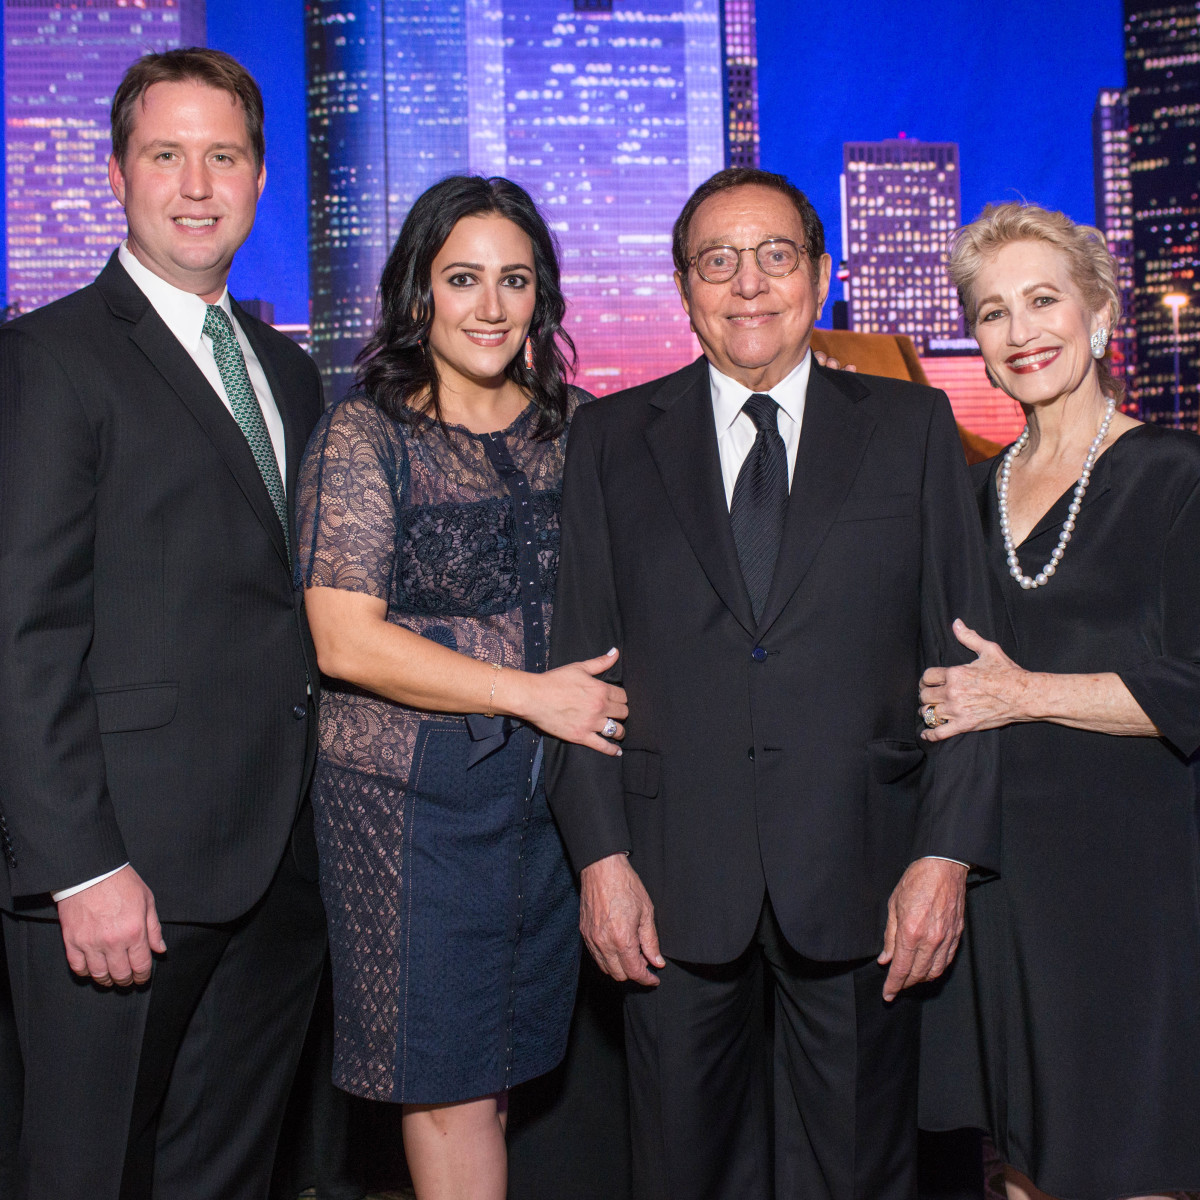 News, Shelby, MD Anderson Living Legend, Nov. 2015, Todd Forester, Kelli Kickerillo, Vincent Kickerillo, Mary Kickerillo